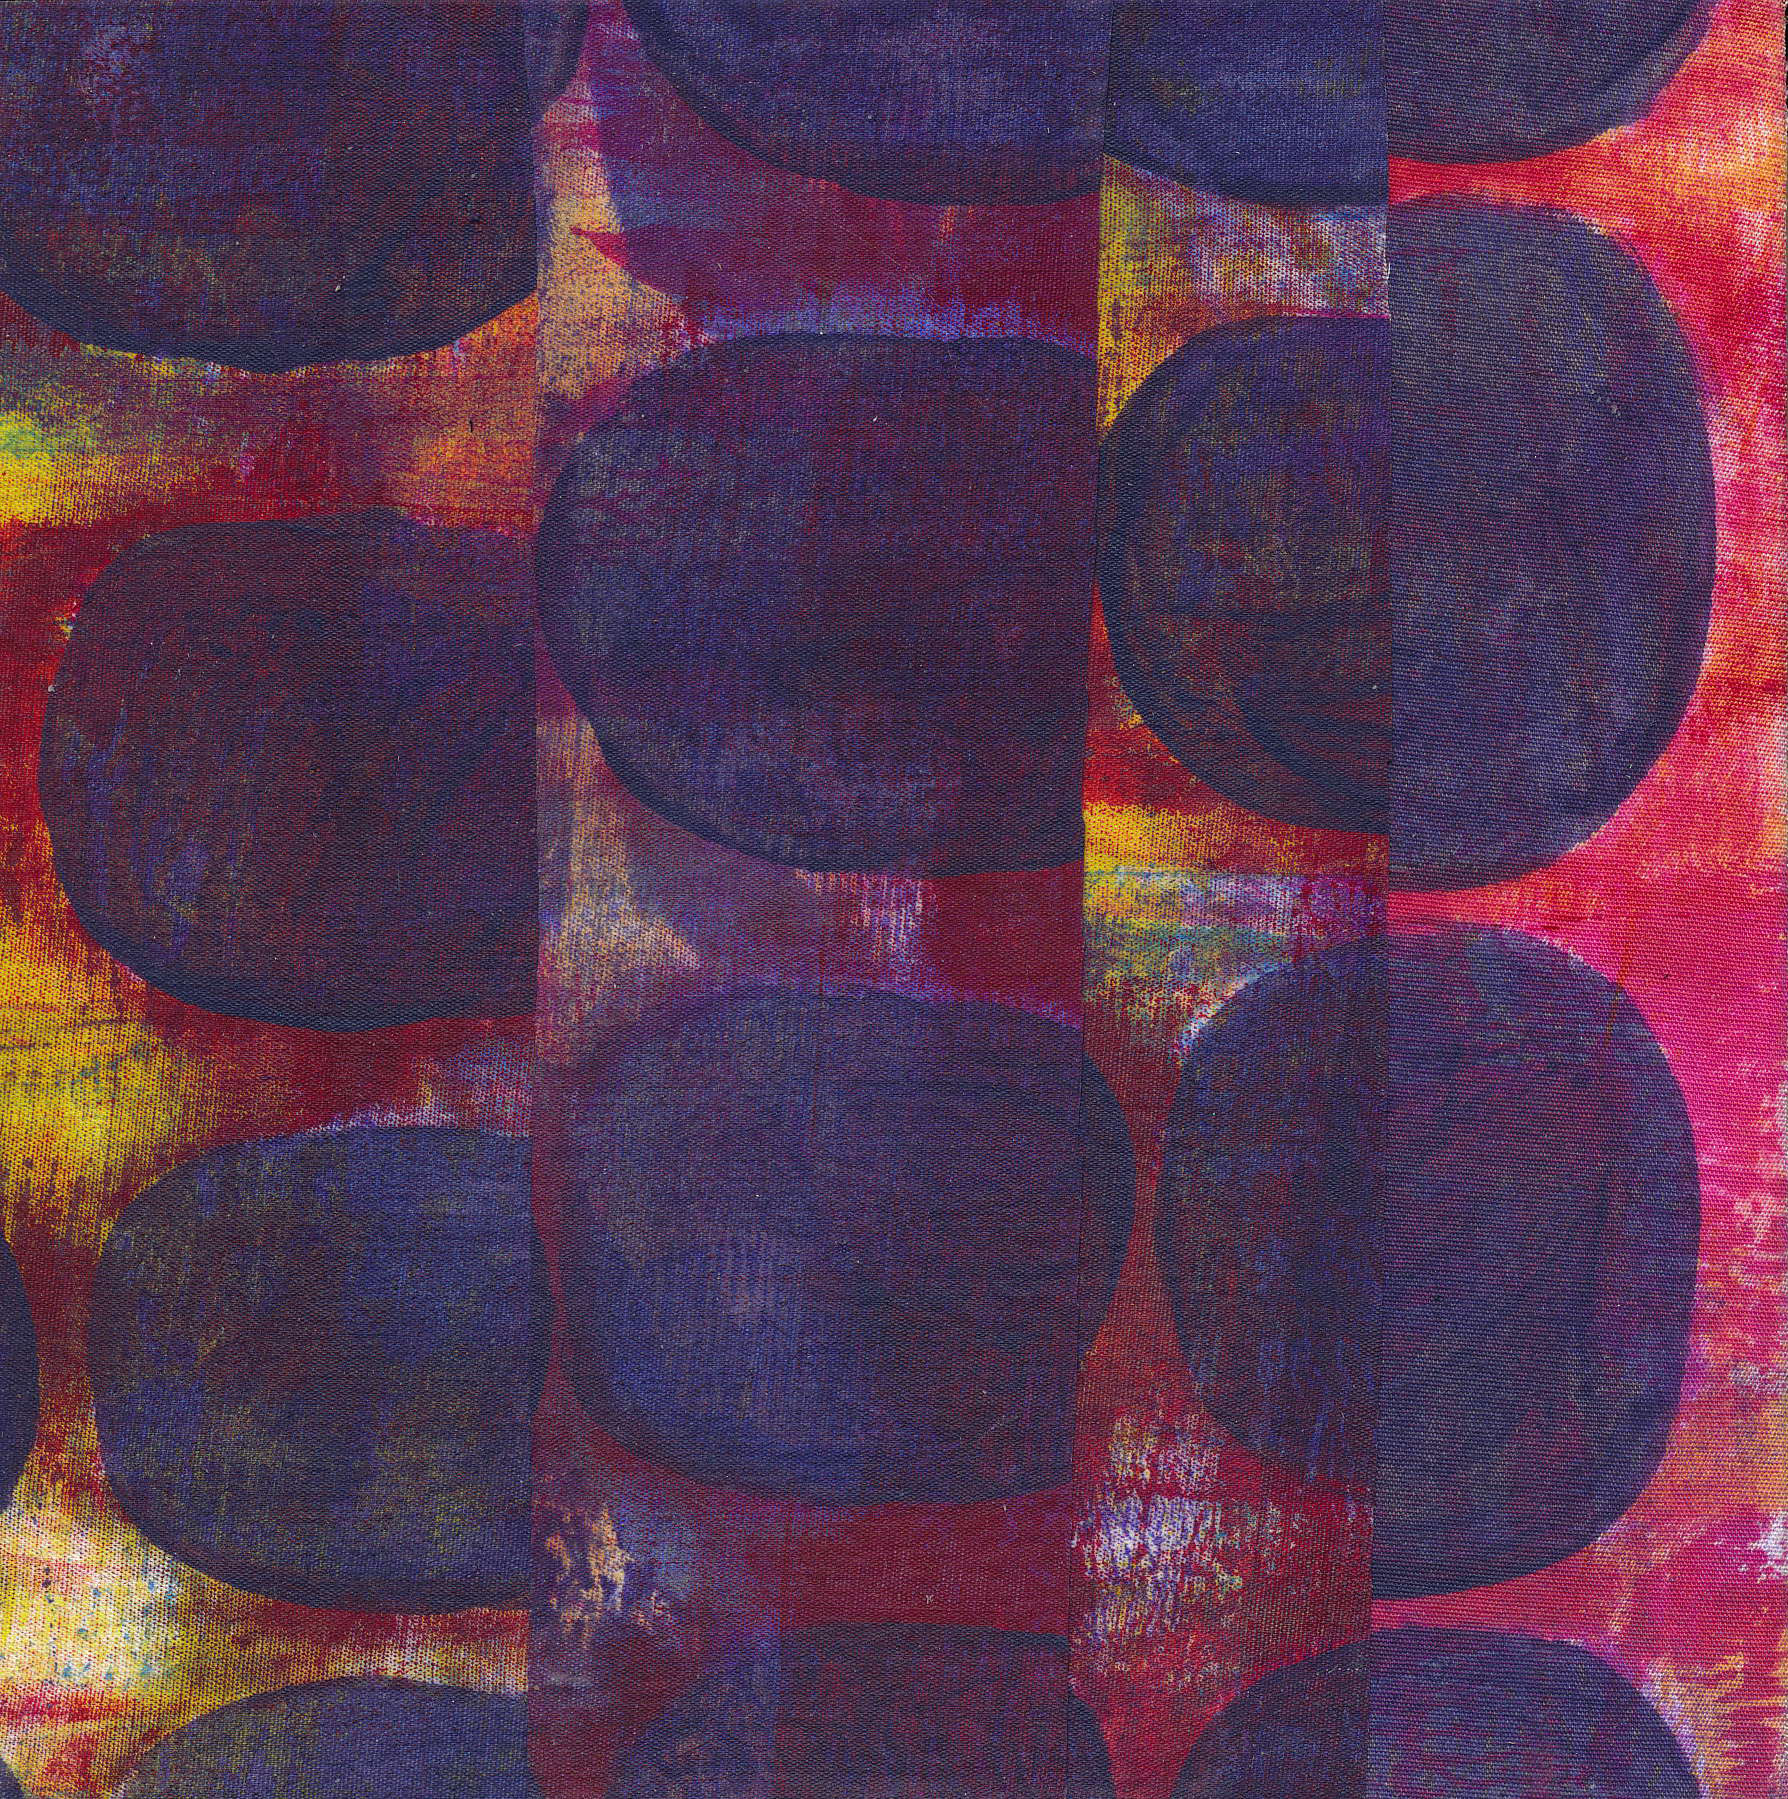 Jeanne Williamson,  Fragments from Ice on Fences #9 , mixed media on board, 6x6